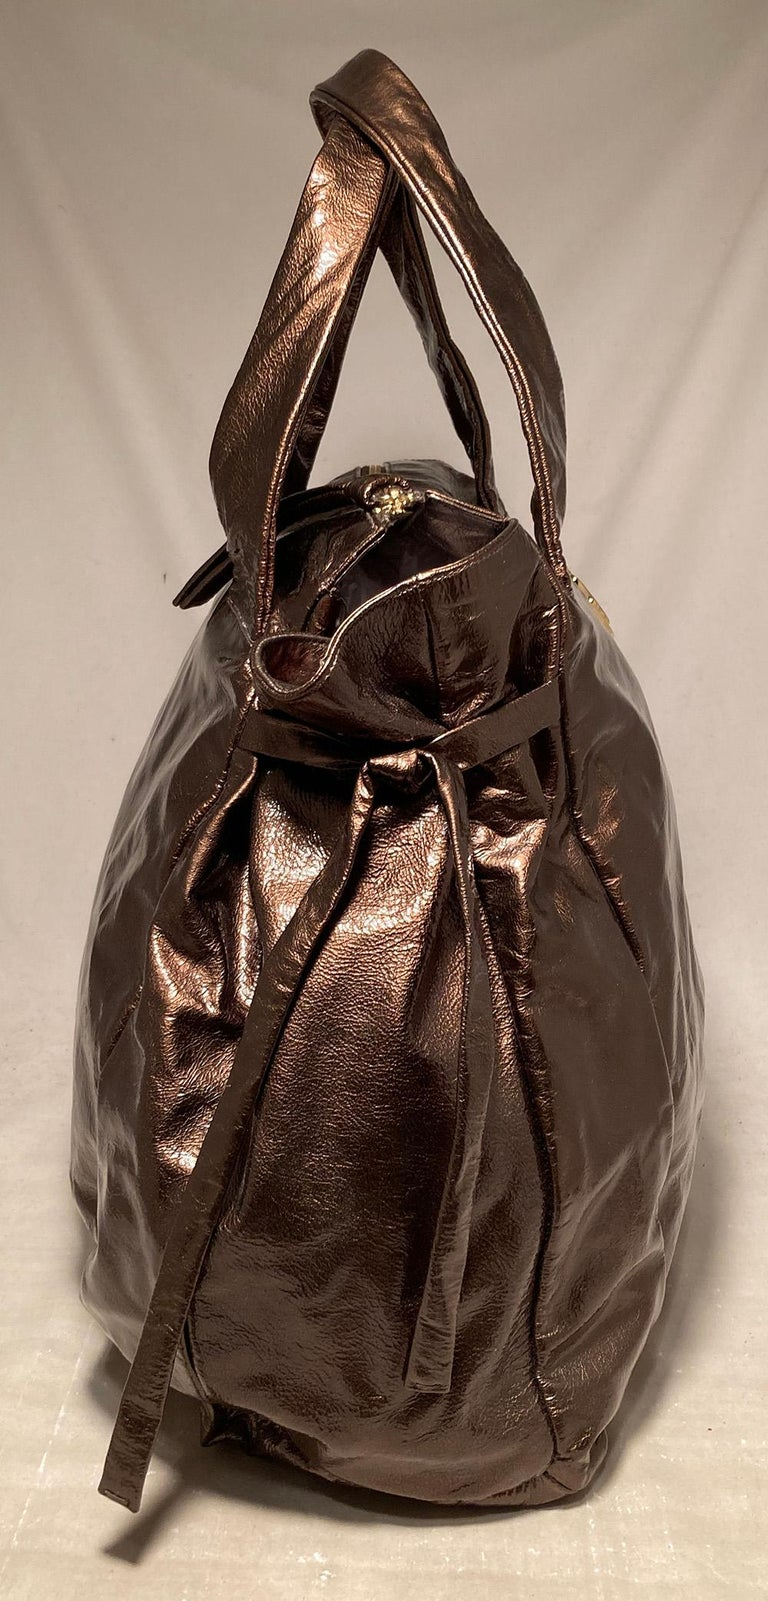 Gucci Bronze Patent Leather Hysteria Bag in excellent condition. Metallic bronze patent leather exterior trimmed with gold hardware, double top handles, front round Gucci medallion in gold, unique side ties and coveted Hysteria design. . Top zipper